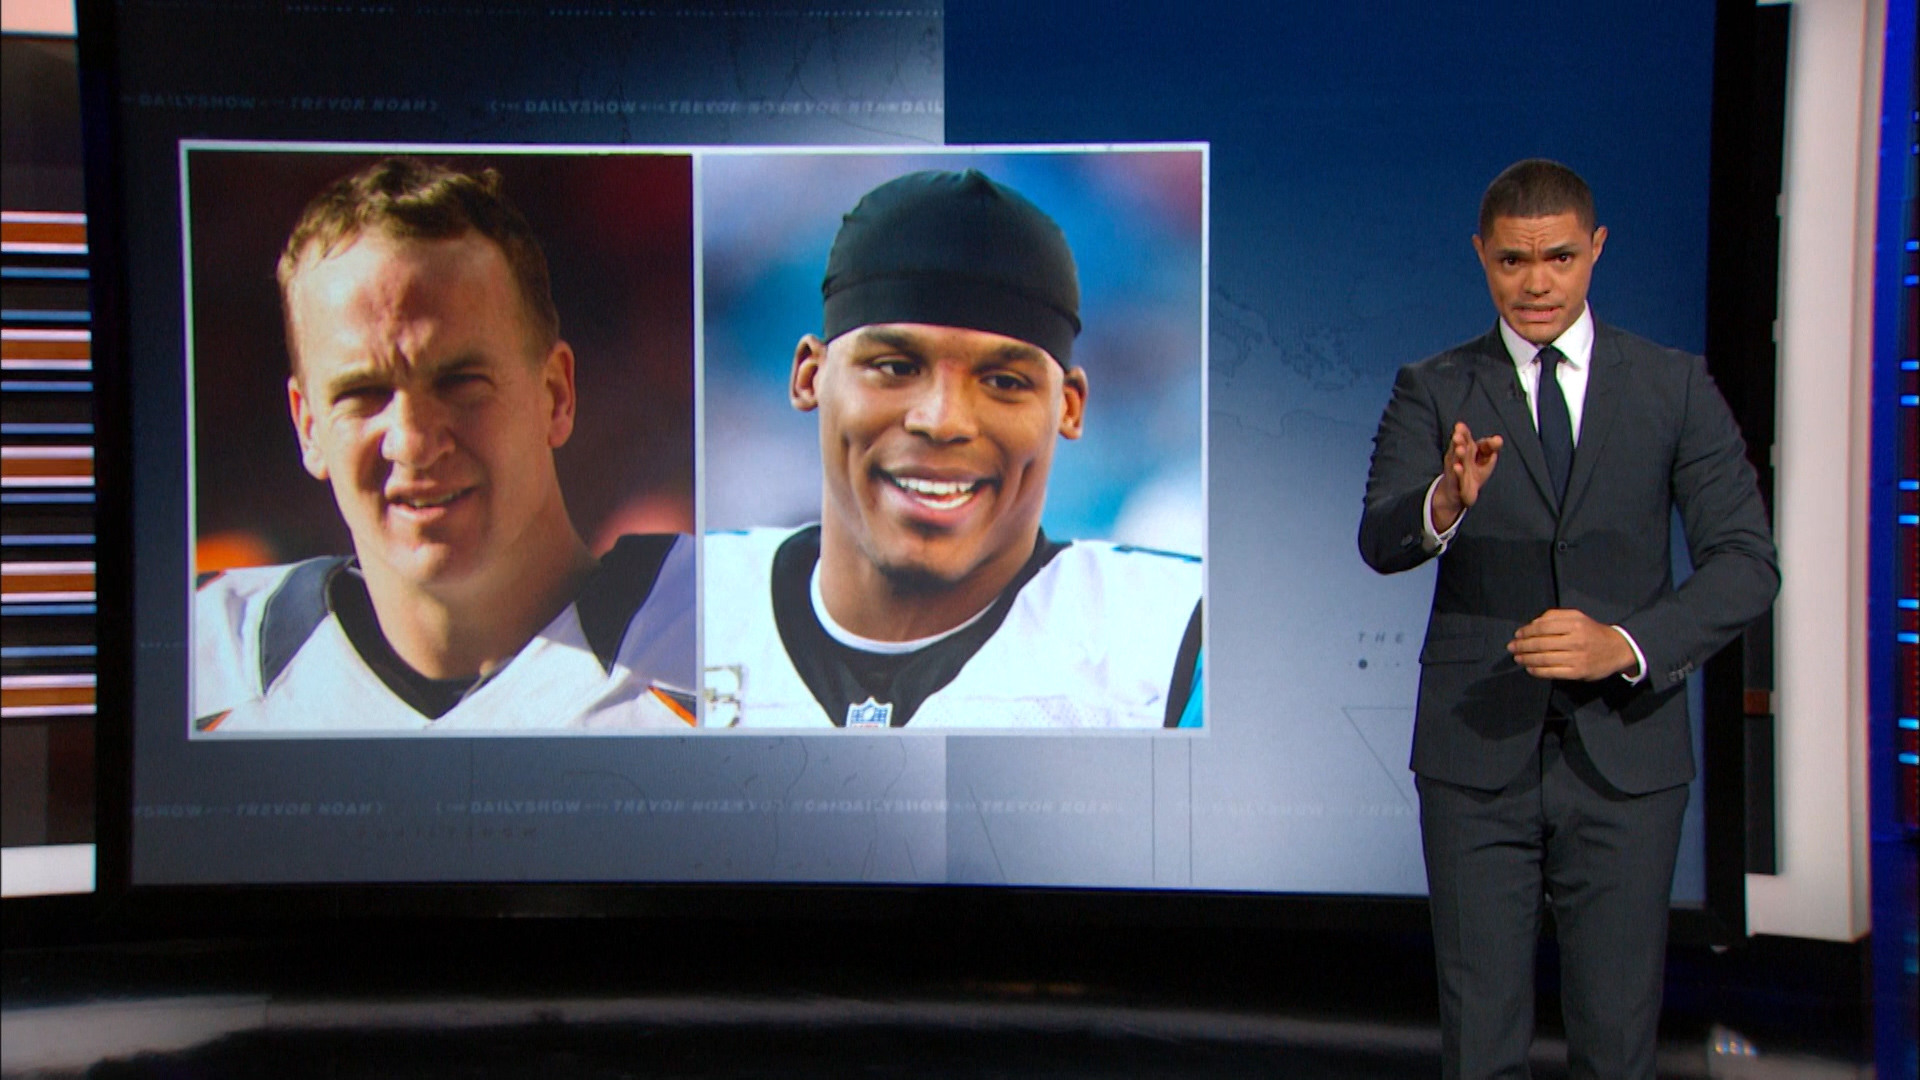 THE DAILY SHOW - THE BIG GAME'S QUARTERBACK MATCHUP